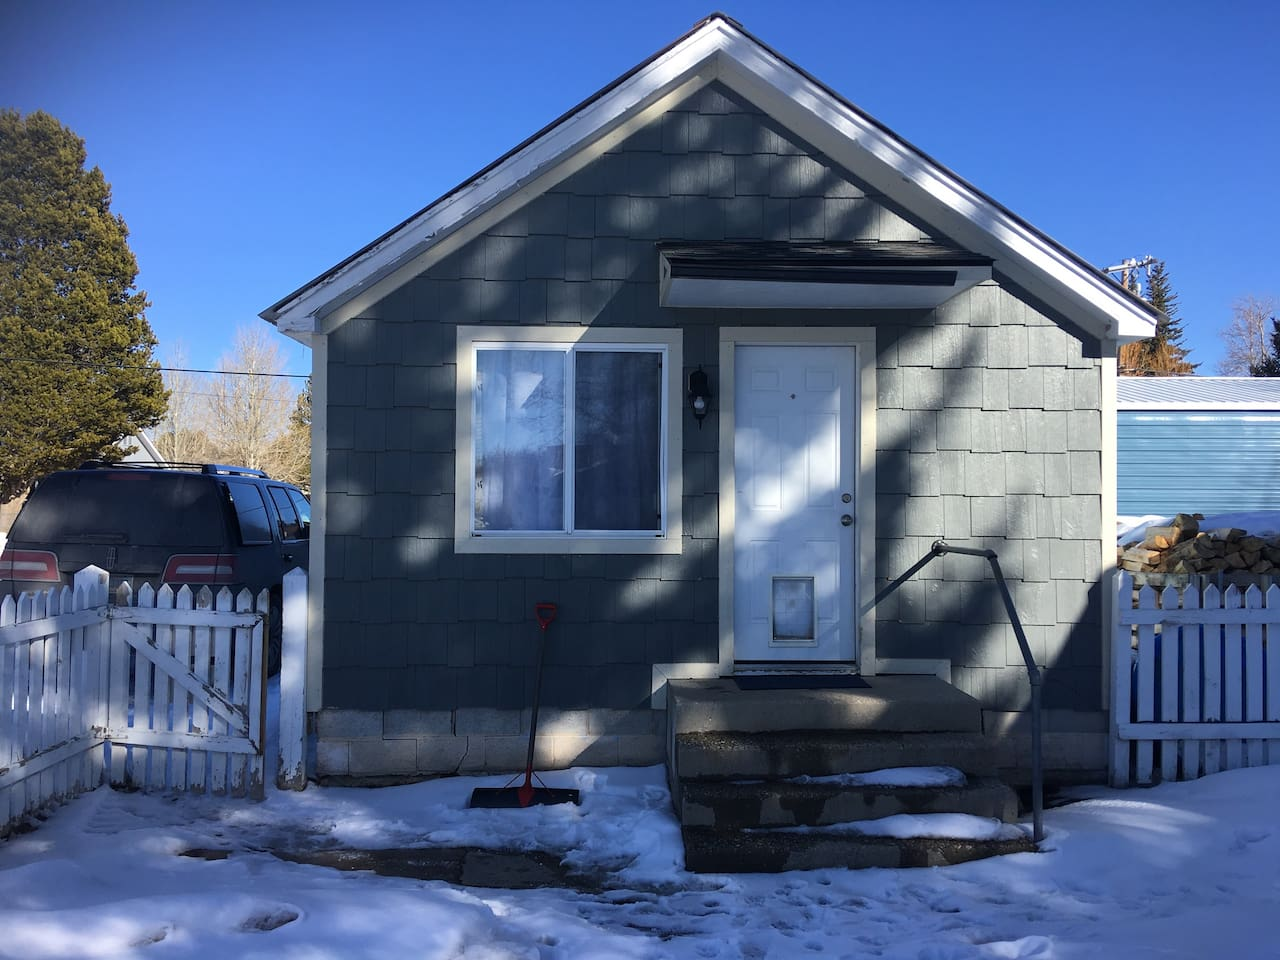 """""""The Weary Traveler"""" Charming older 1 bedroom, 1 - 3/4 bathroom, and a sofa sleeper home that is centrally located in Pinedale, Wyoming. Everything is within walking distance from the home. Pet friendly"""